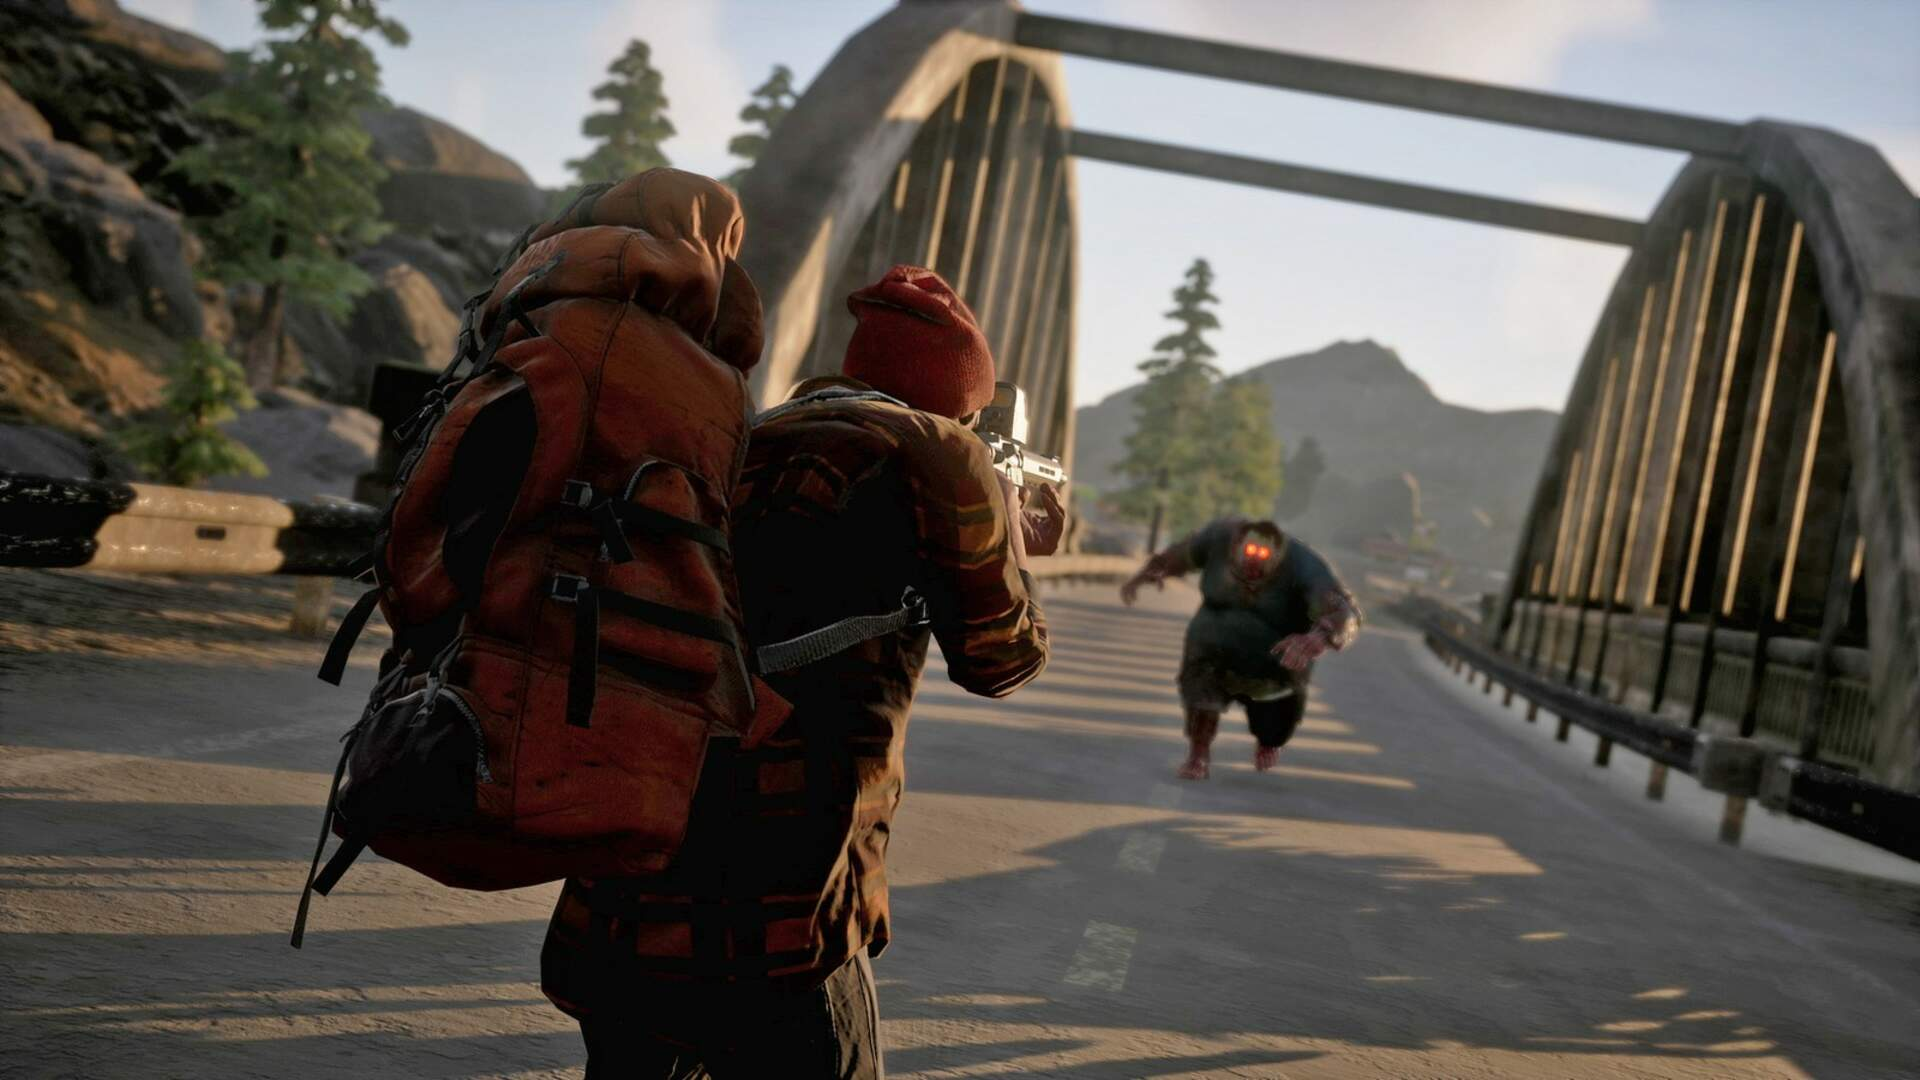 State of Decay 2 Tips - Controls Guide, How to Save, How to Promote and Change Leaders